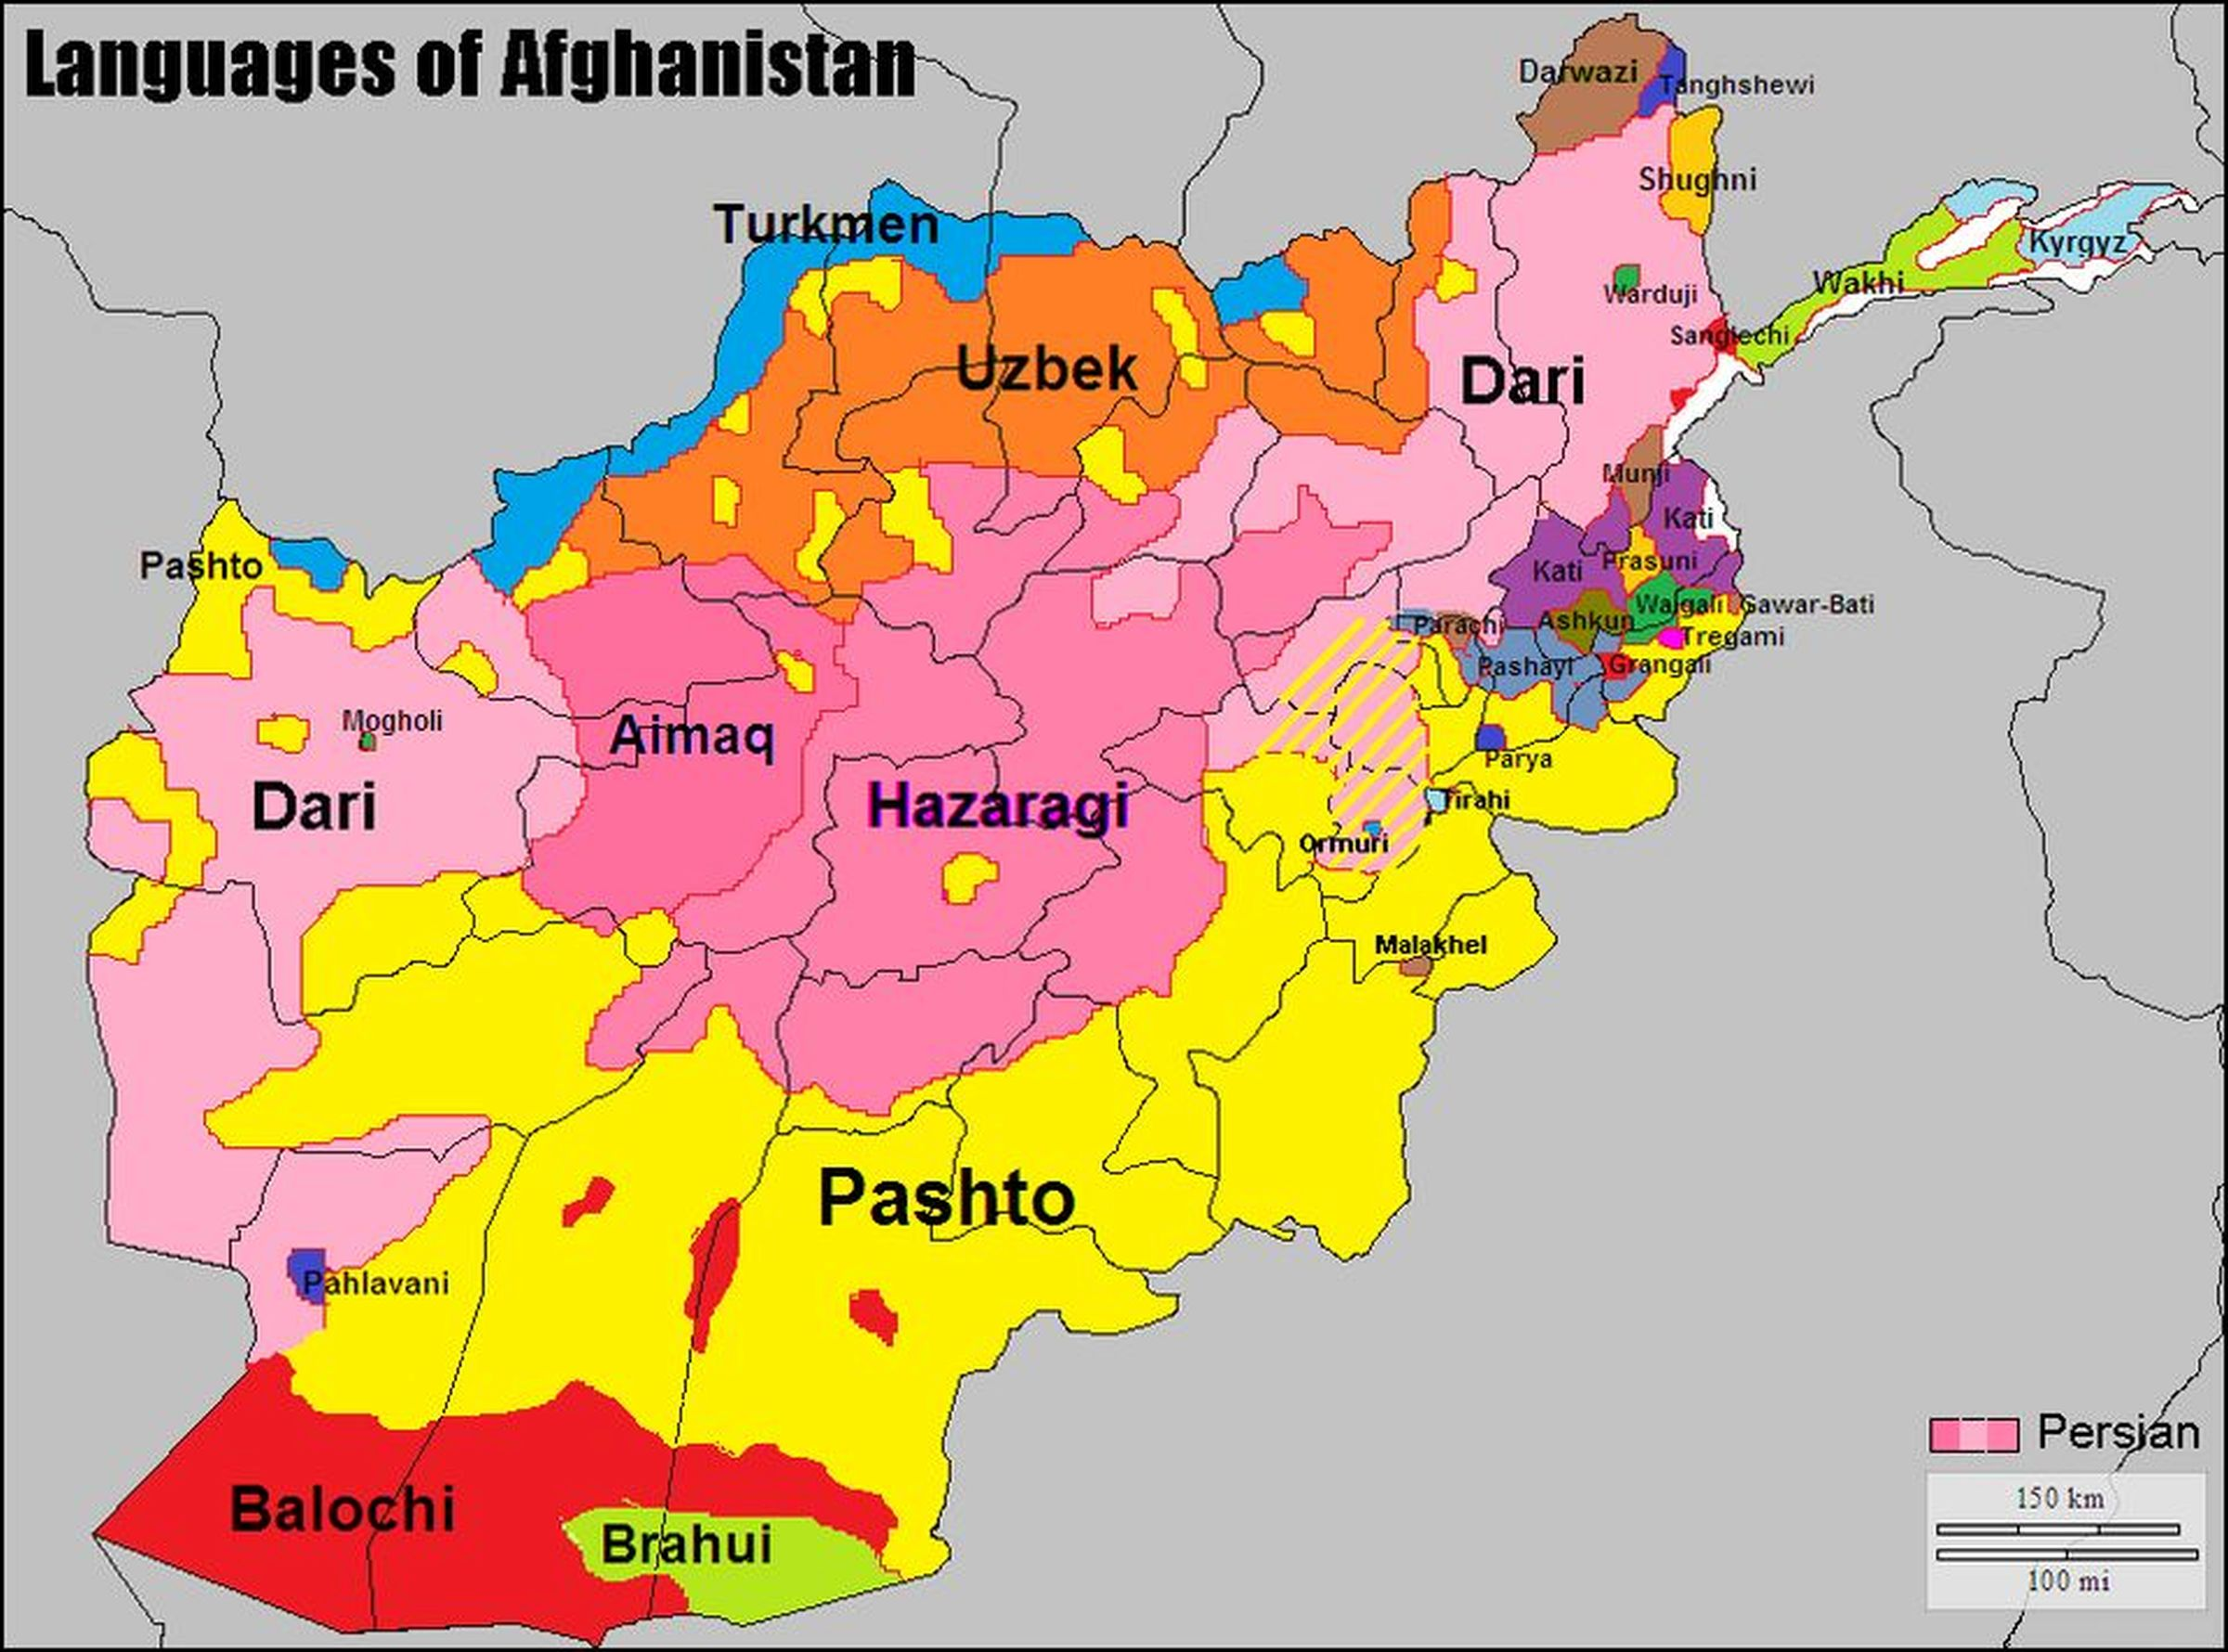 source of image: https://www.reddit.com/r/MapPorn/comments/9k5621/languages_of_afghanistan/